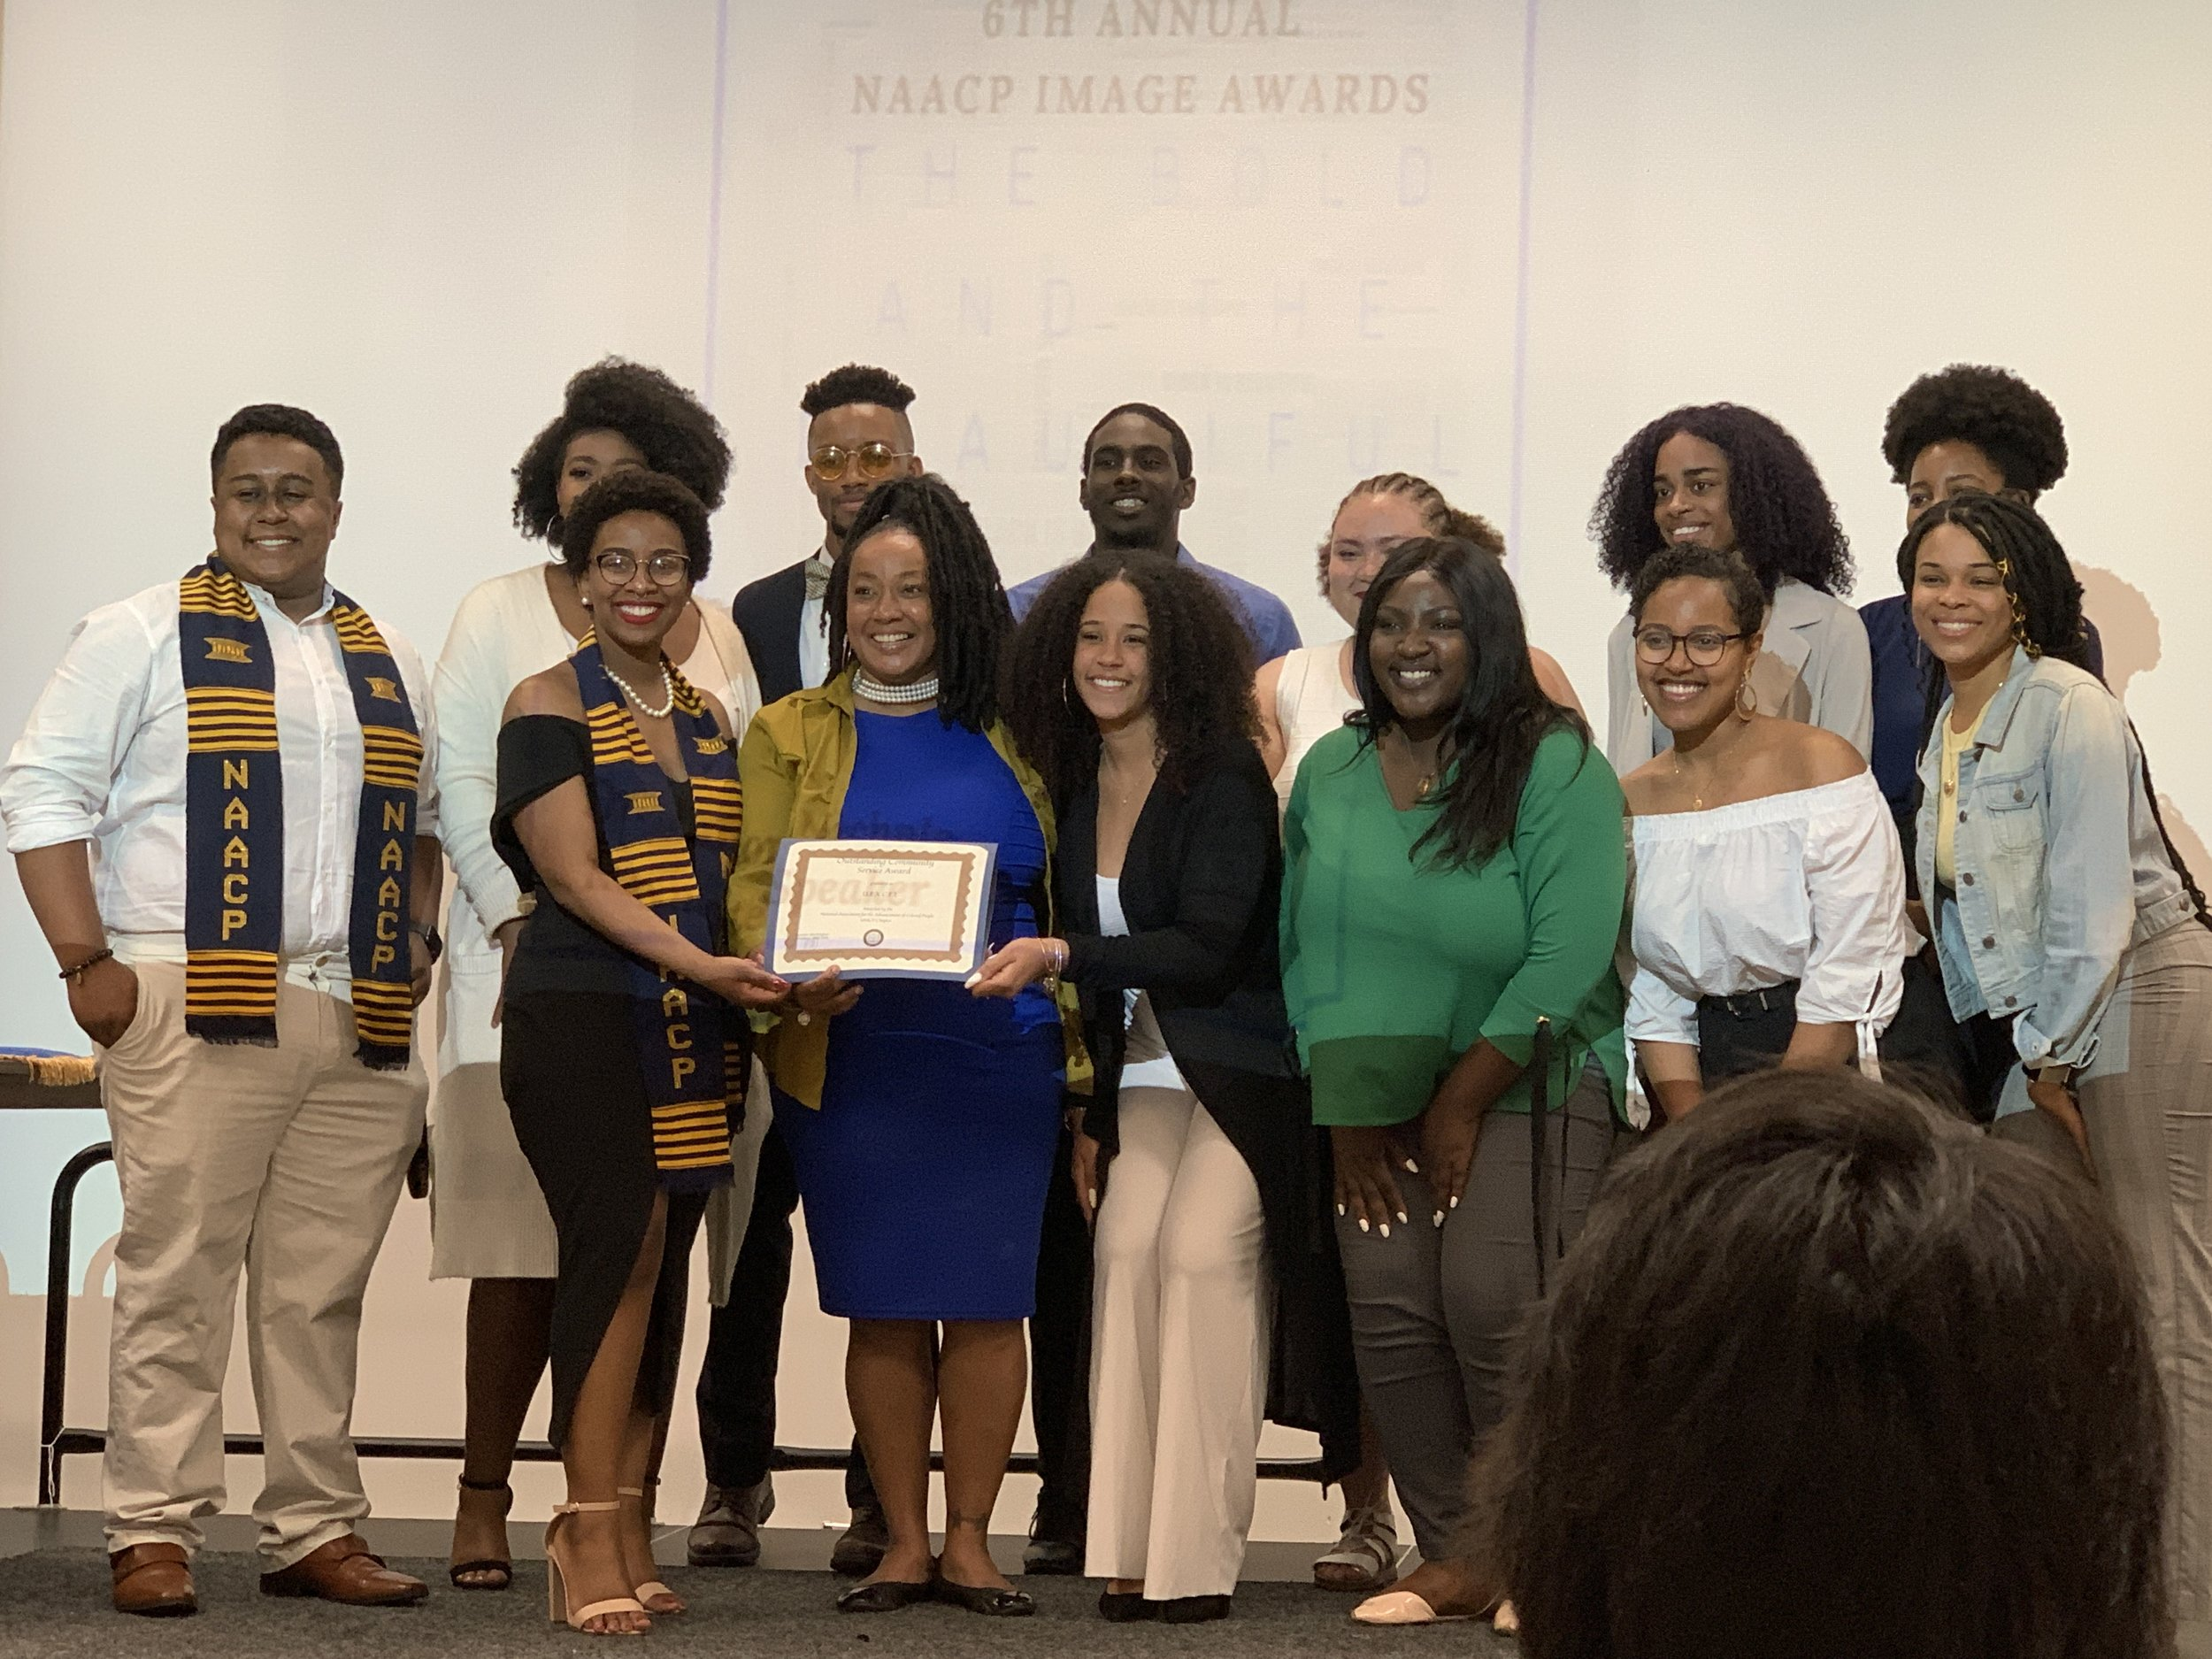 Members of Unified Engaging eXperience Committed to Empowering Leadership accept the University of Maryland College Park chapter of the National Association for the Advancement for Colored People Image Award for community service on Monday, May 6, 2019. U.E.X.C.E.L. aims to teach students of color the skills they need to become leaders on campus. (Amina Lampkin/The Black Explosion)